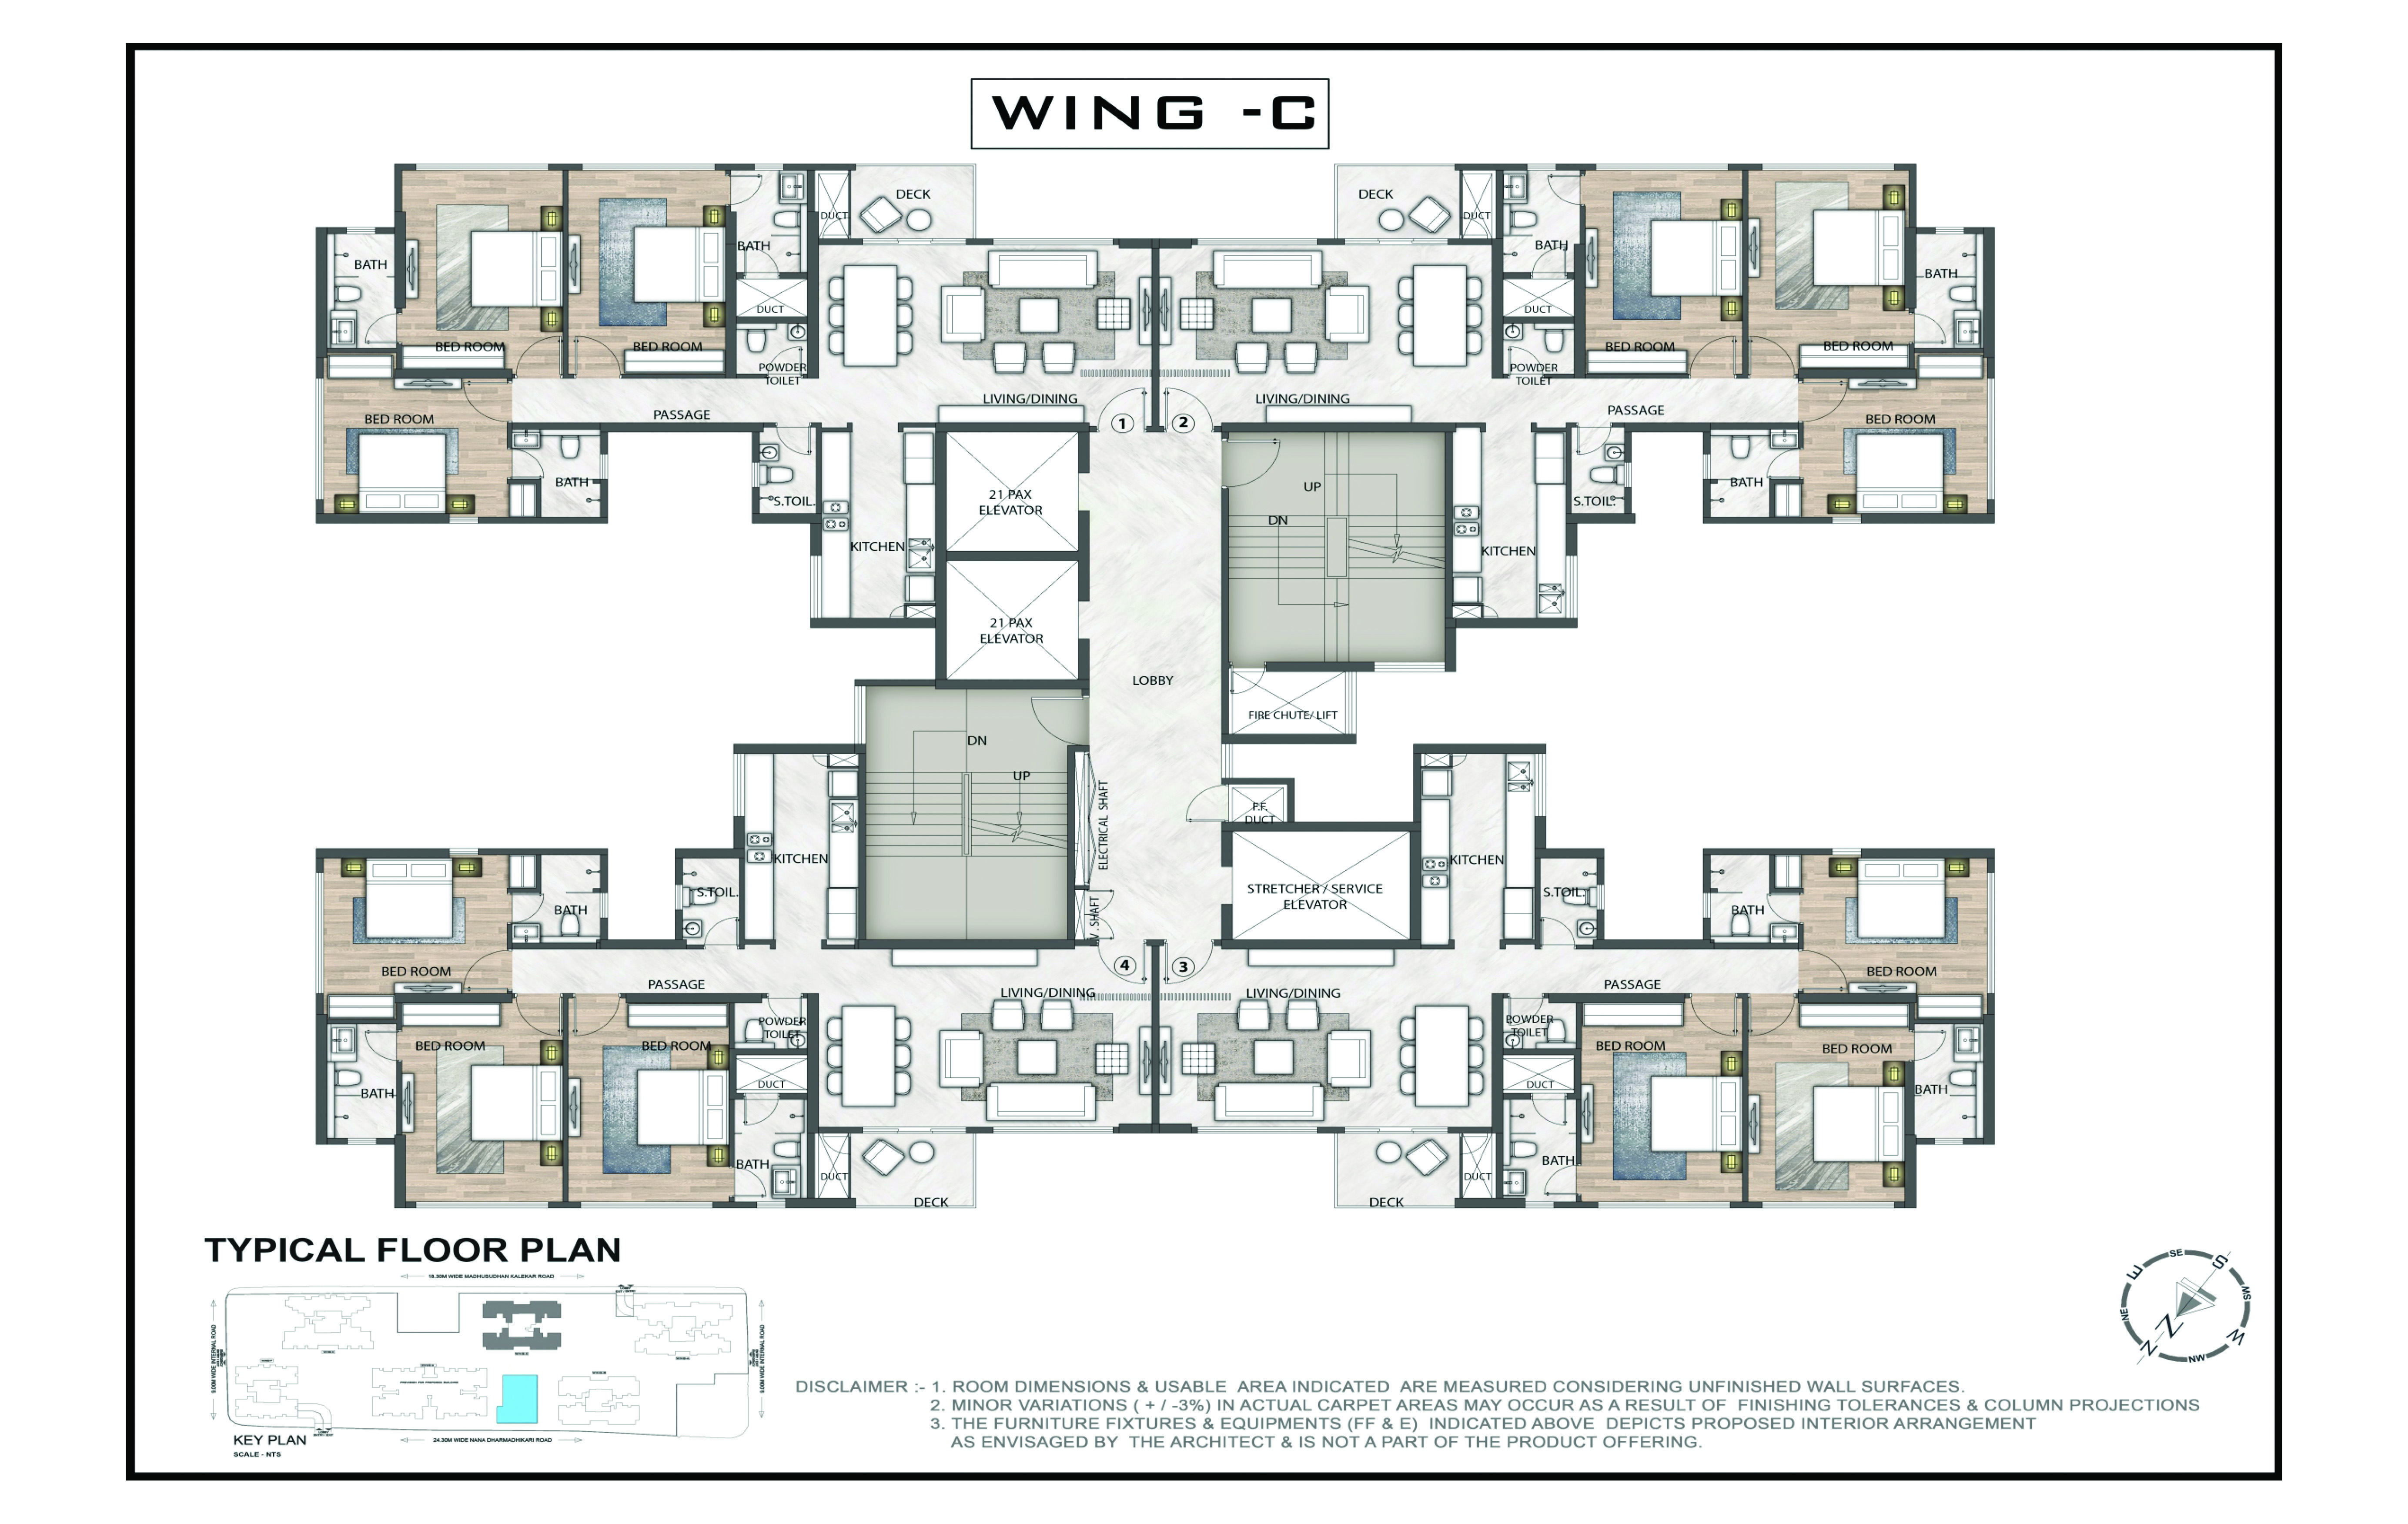 2 Bedroom Senior Citizen Apartments.Floor Plans For Old Age Homes. T ...